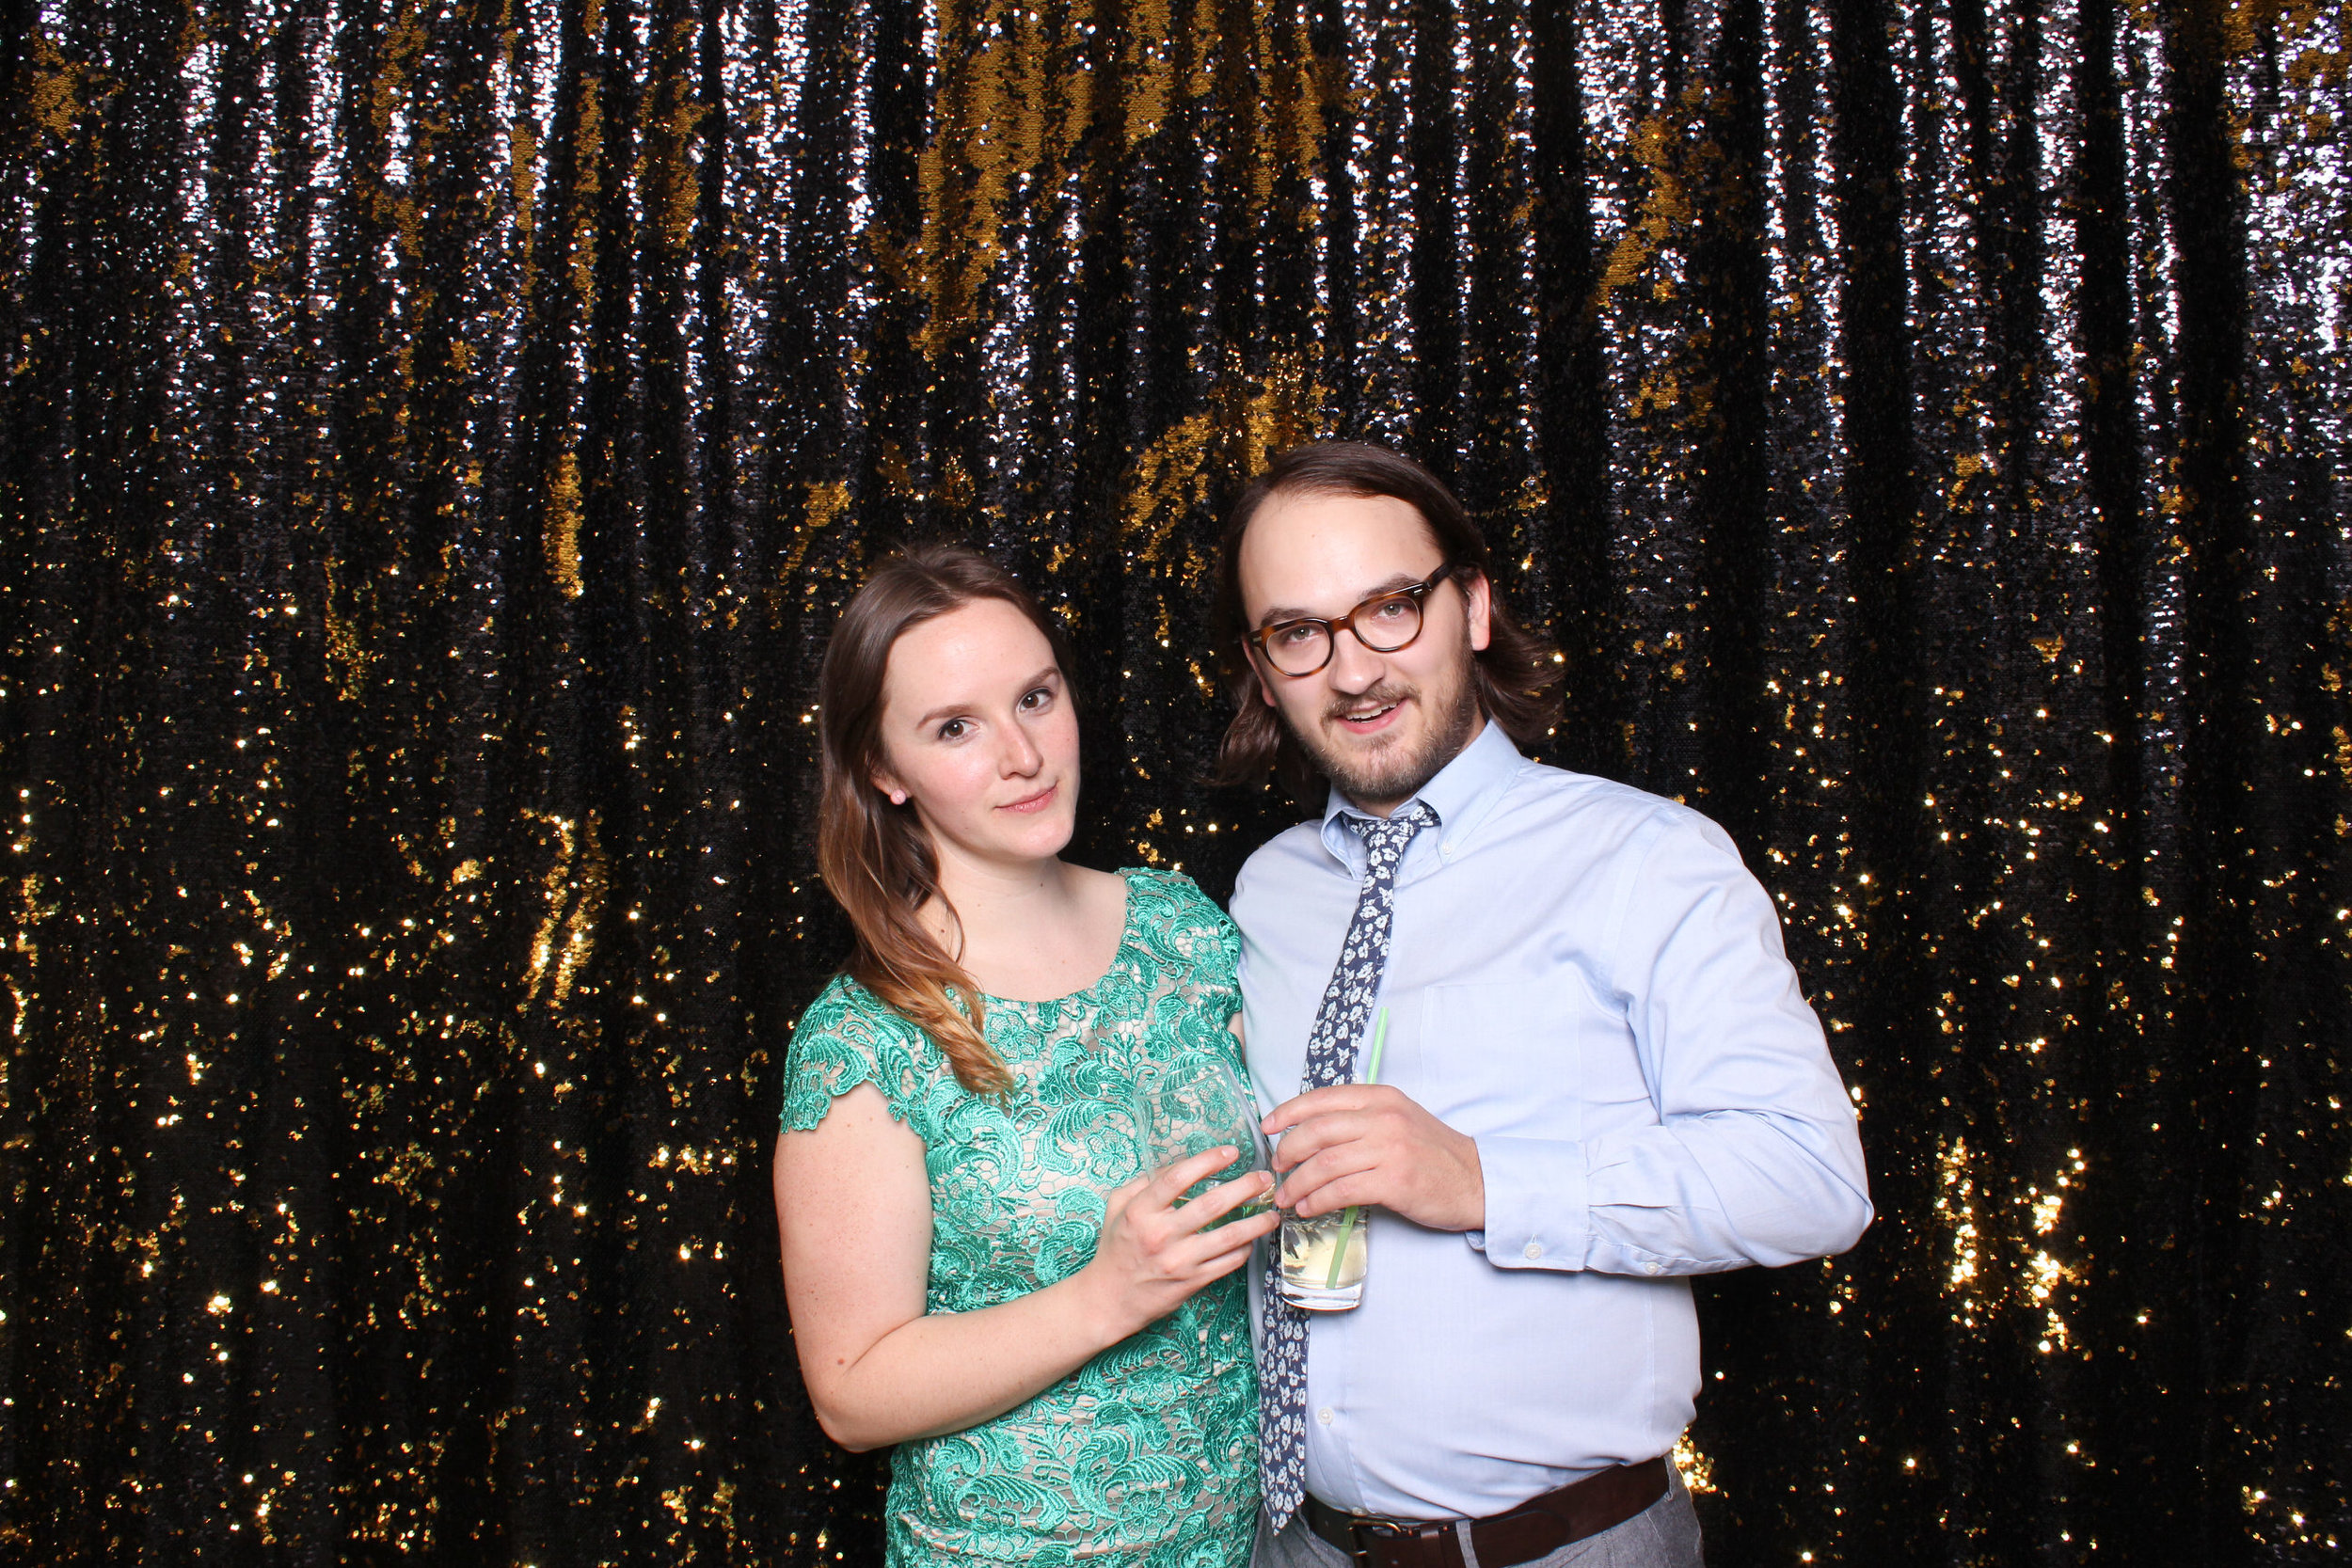 wedding photo booth rental austin00150.jpg